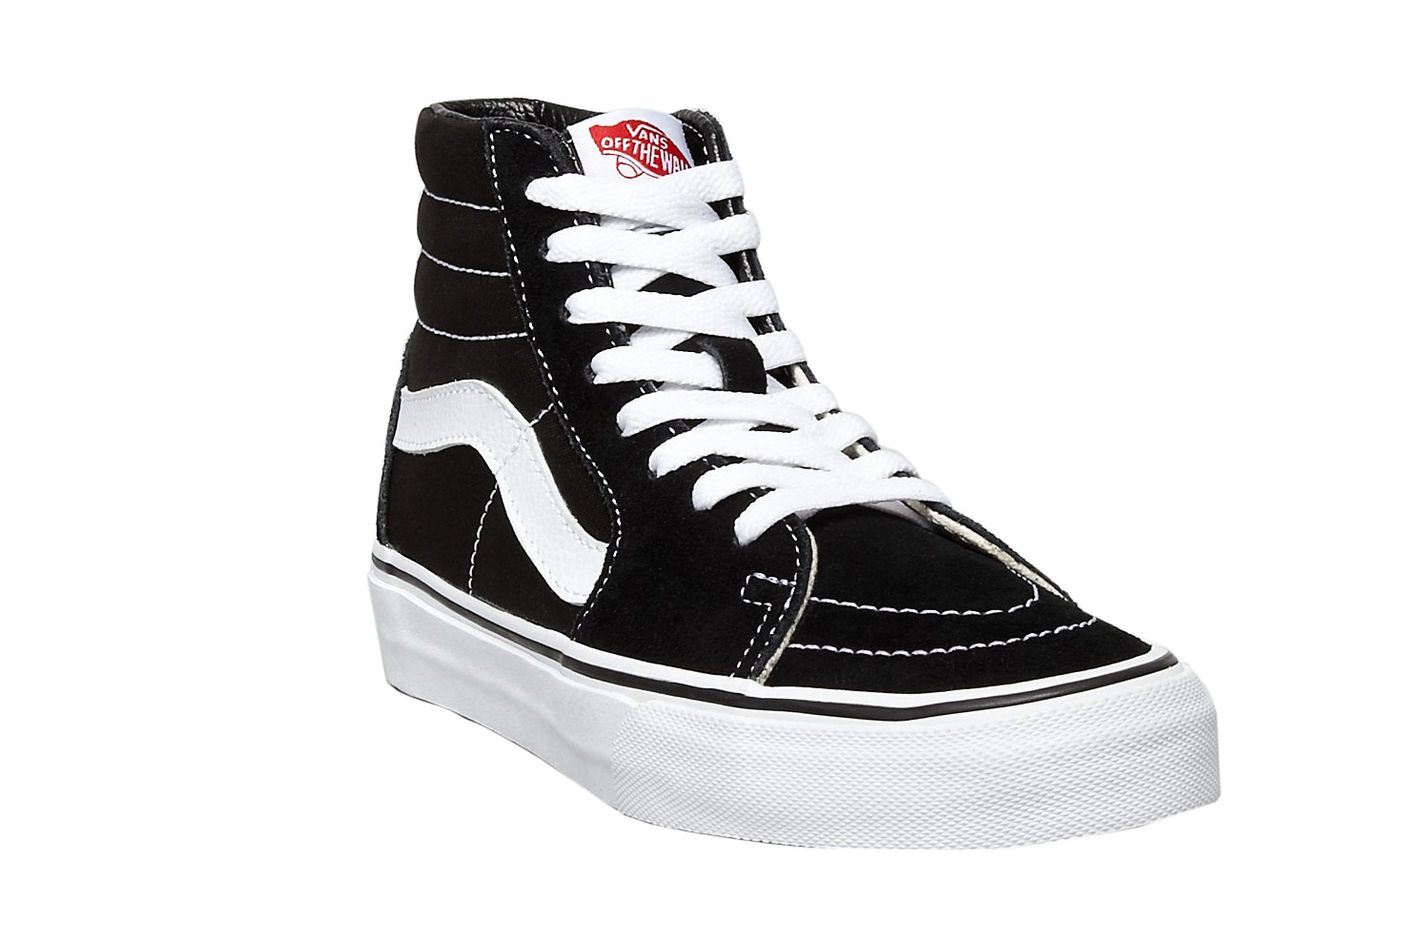 Vans Unisex SK8 High Top Sneakers